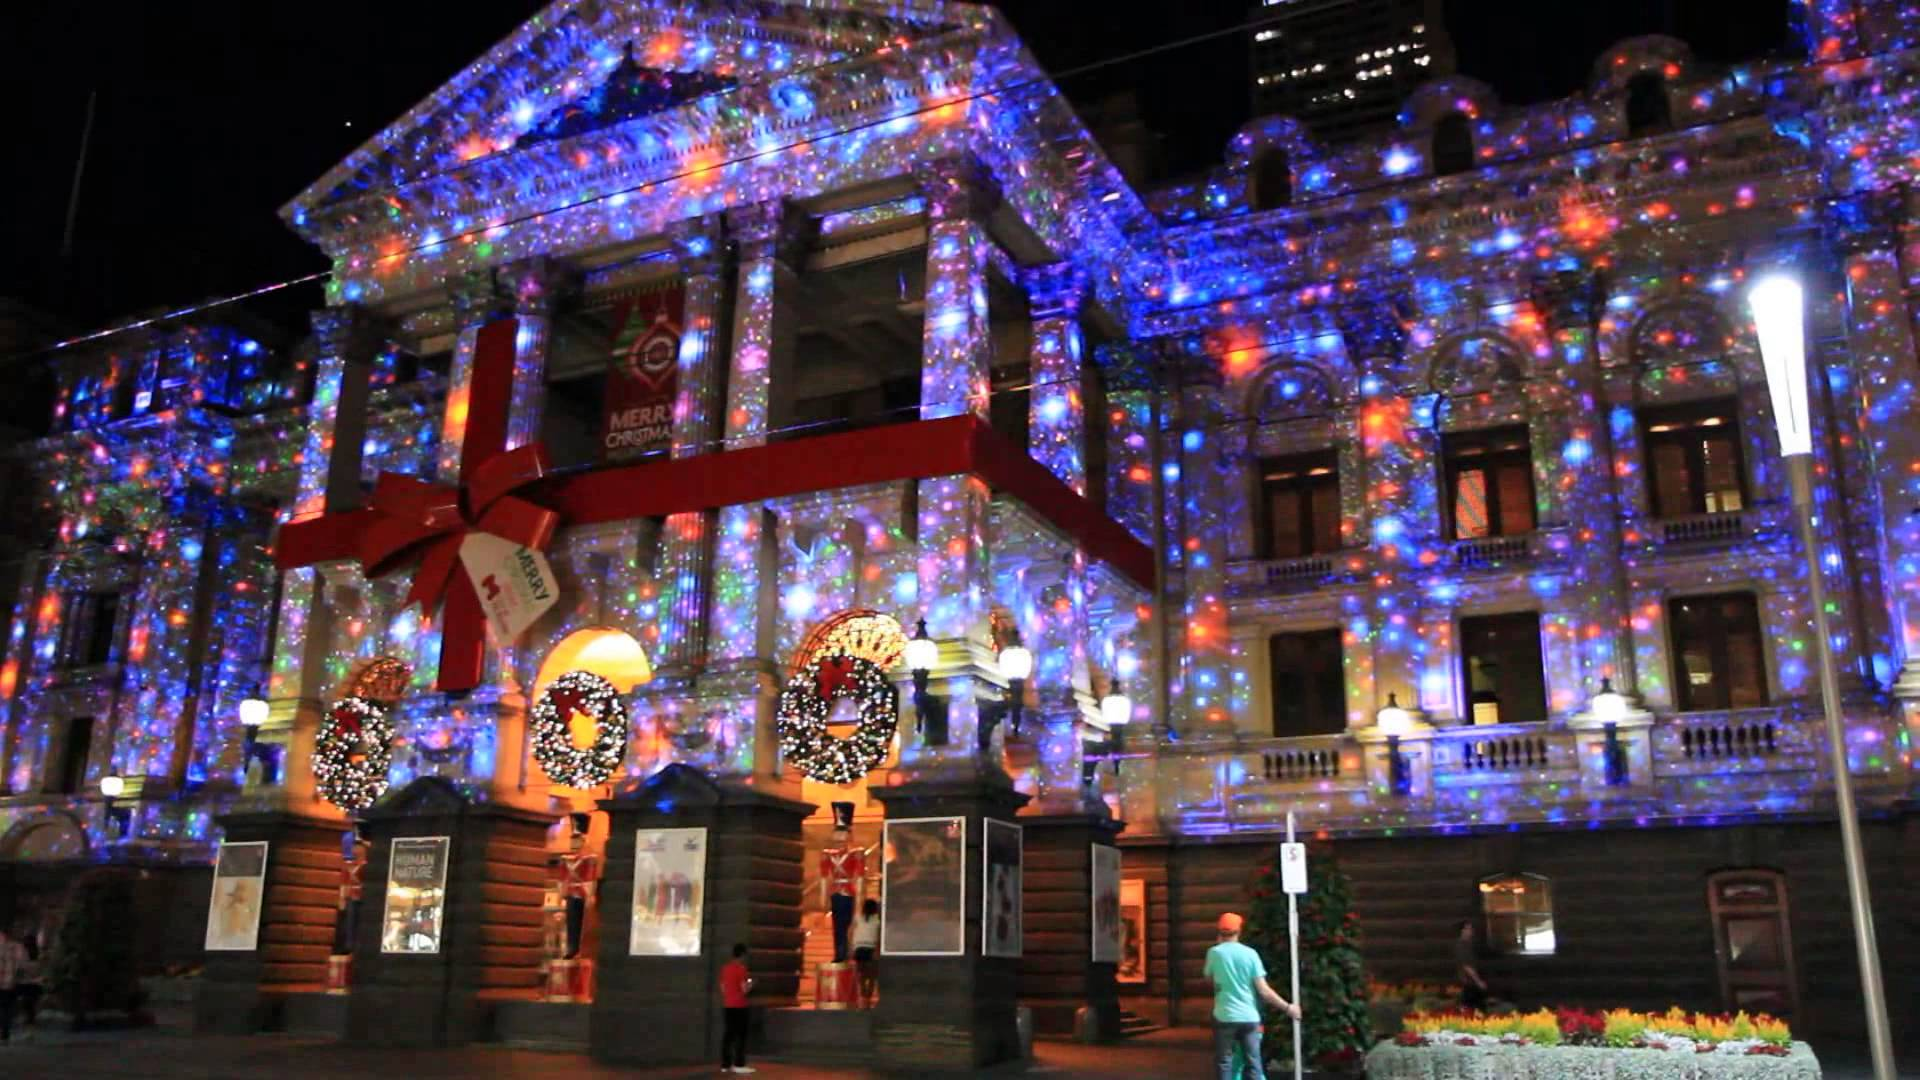 Pretty Christmas lights using projectors